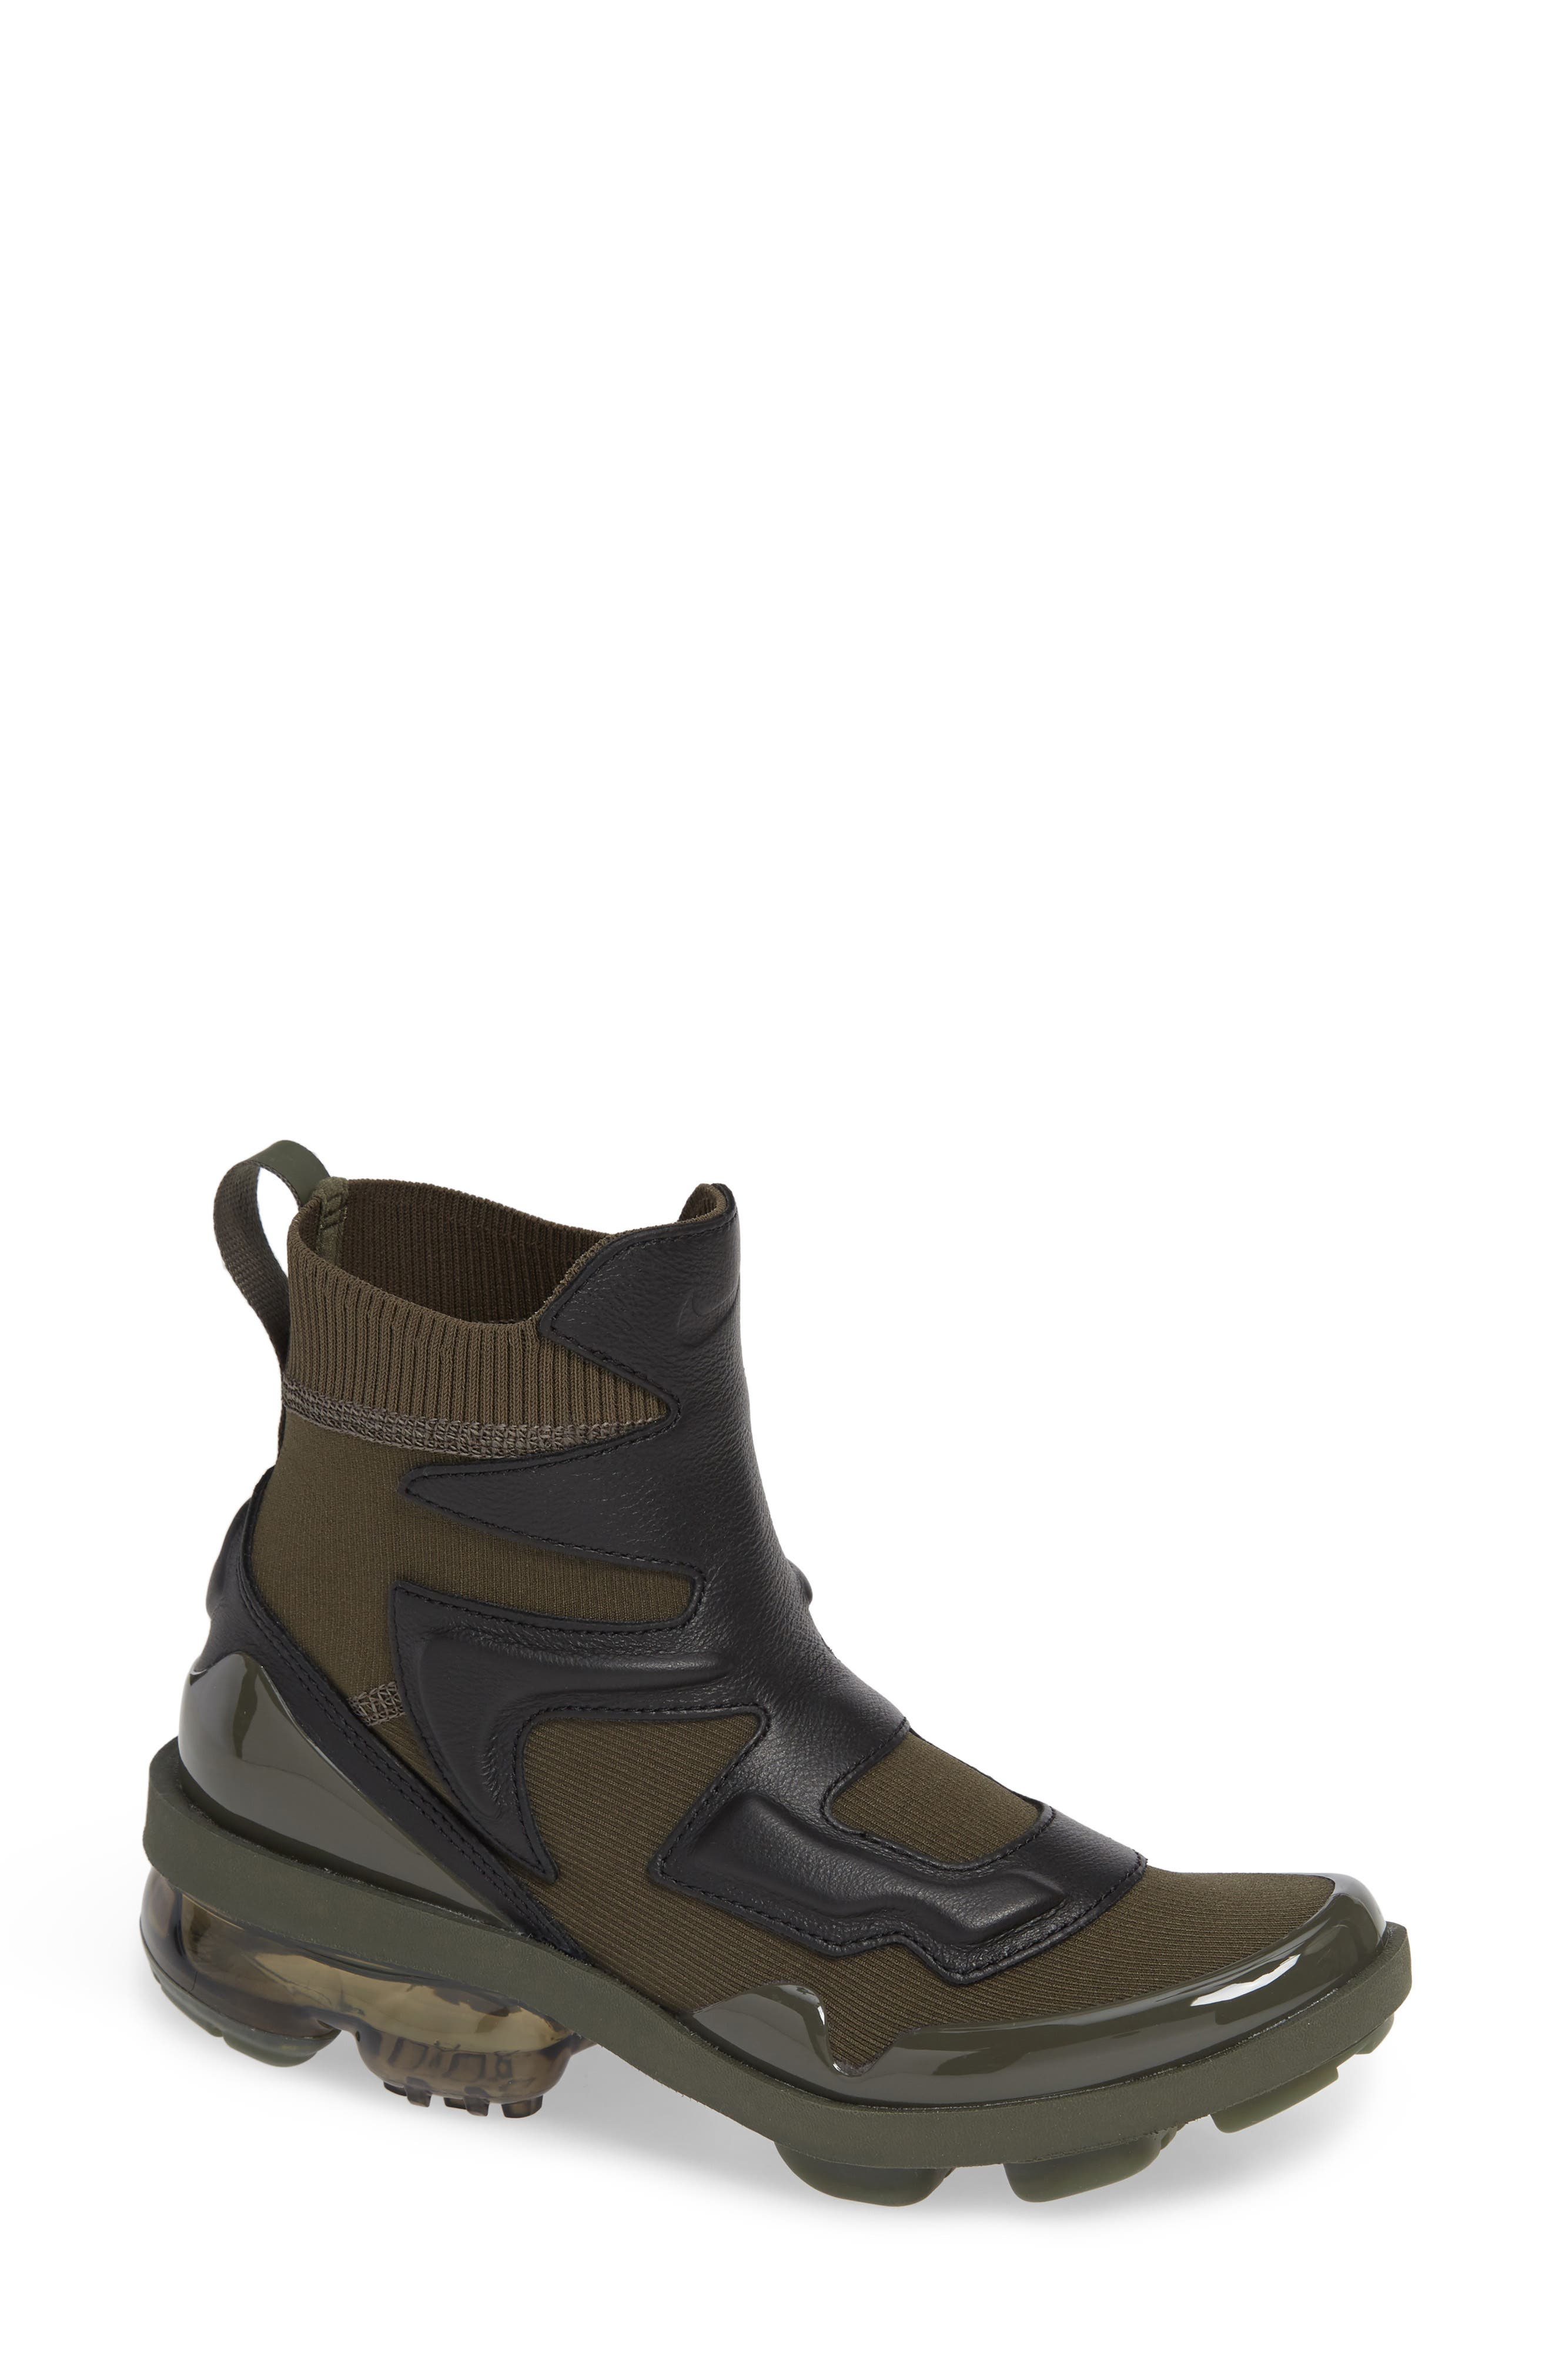 Air Vapormax Light II Sneaker,                         Main,                         color, CARGO KHAKI/ BLACK